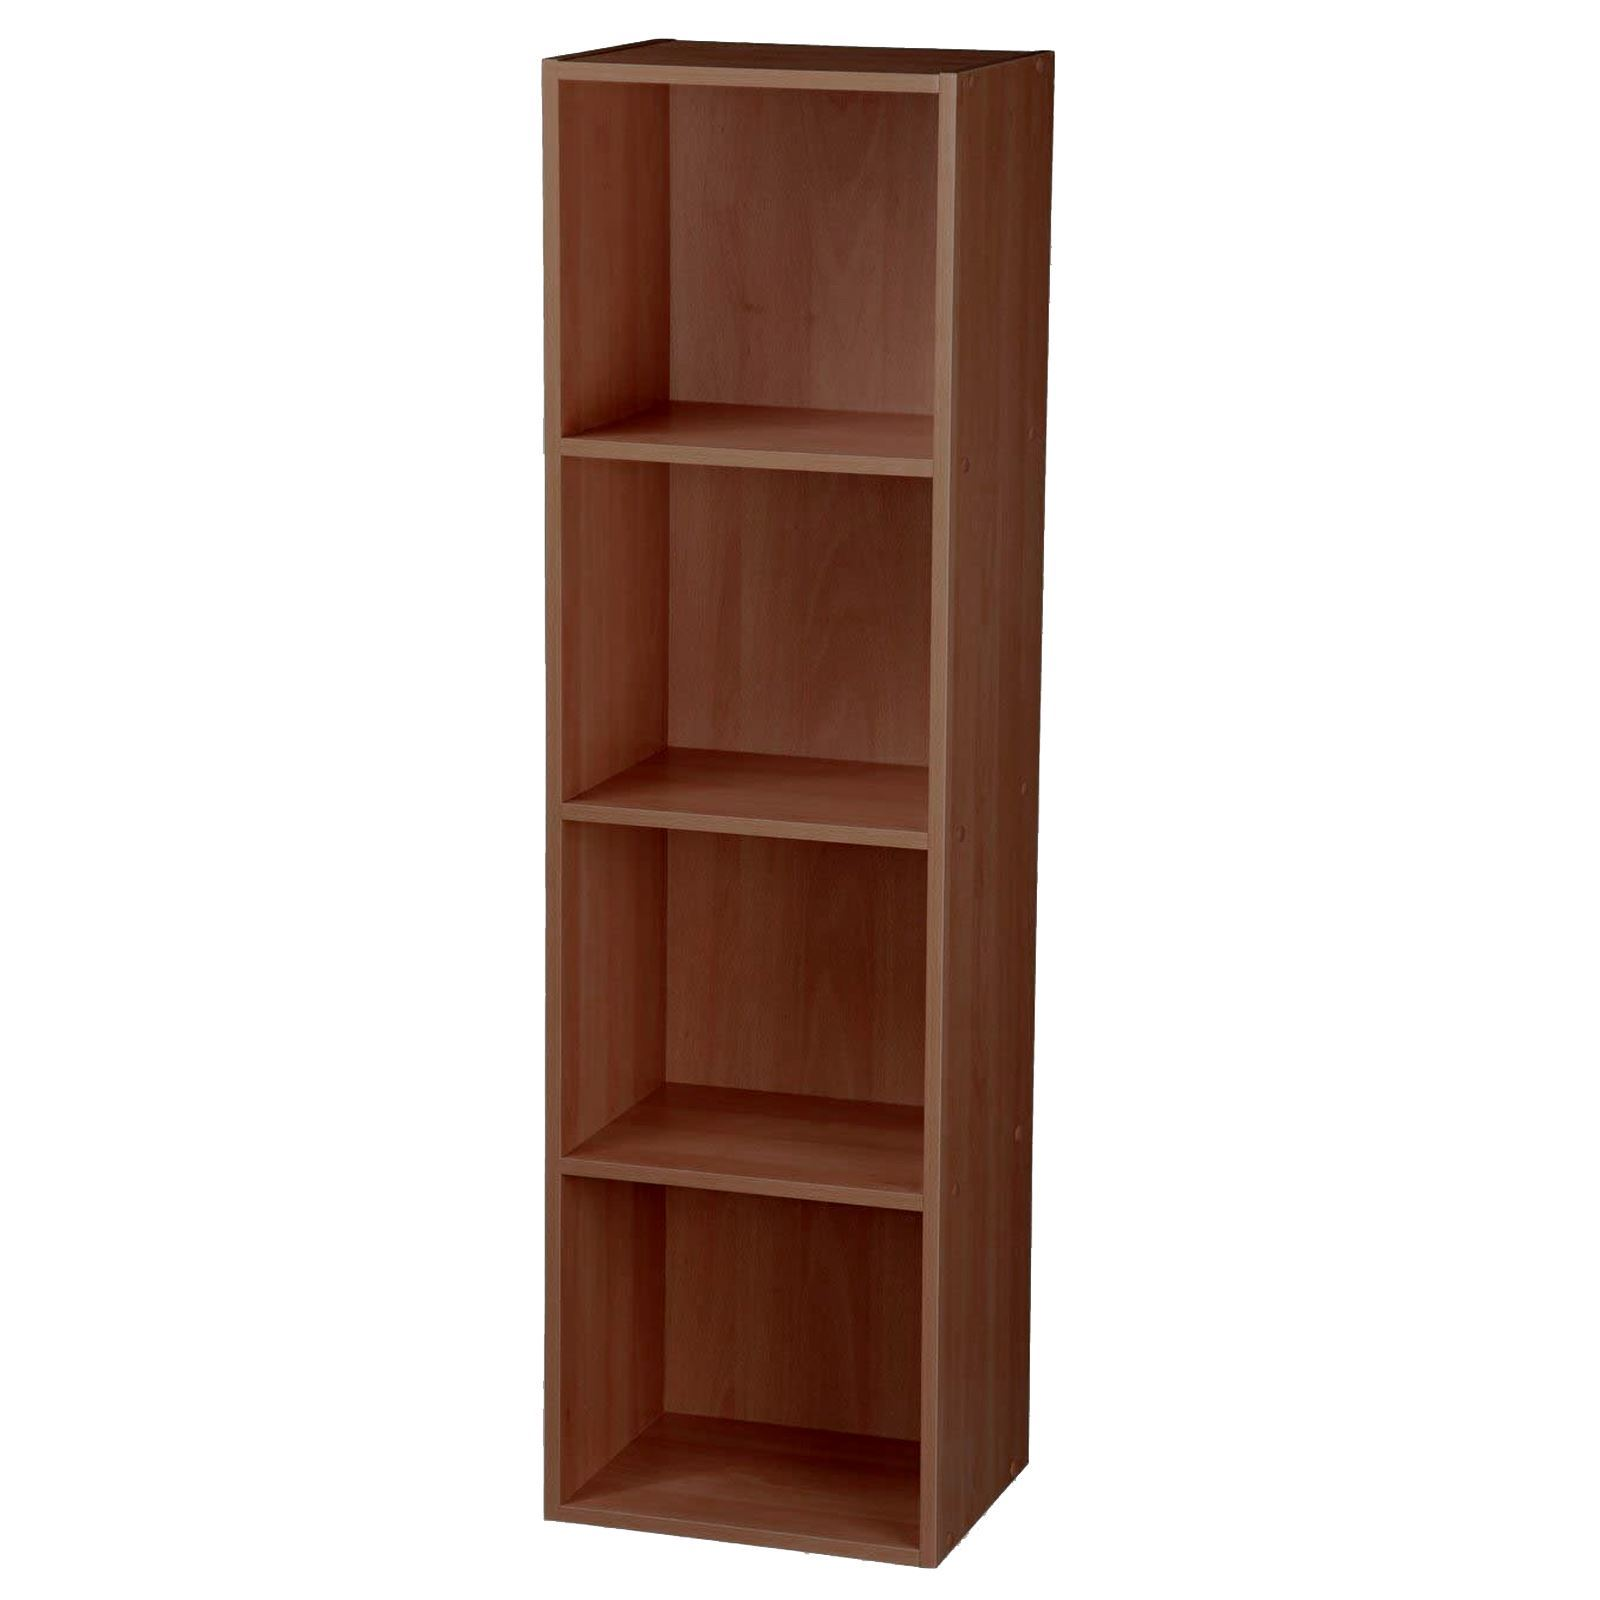 Wooden-Storage-Unit-Cube-2-3-4-Tier-Strong-Bookcase-Shelving-Home-Office-Display thumbnail 21